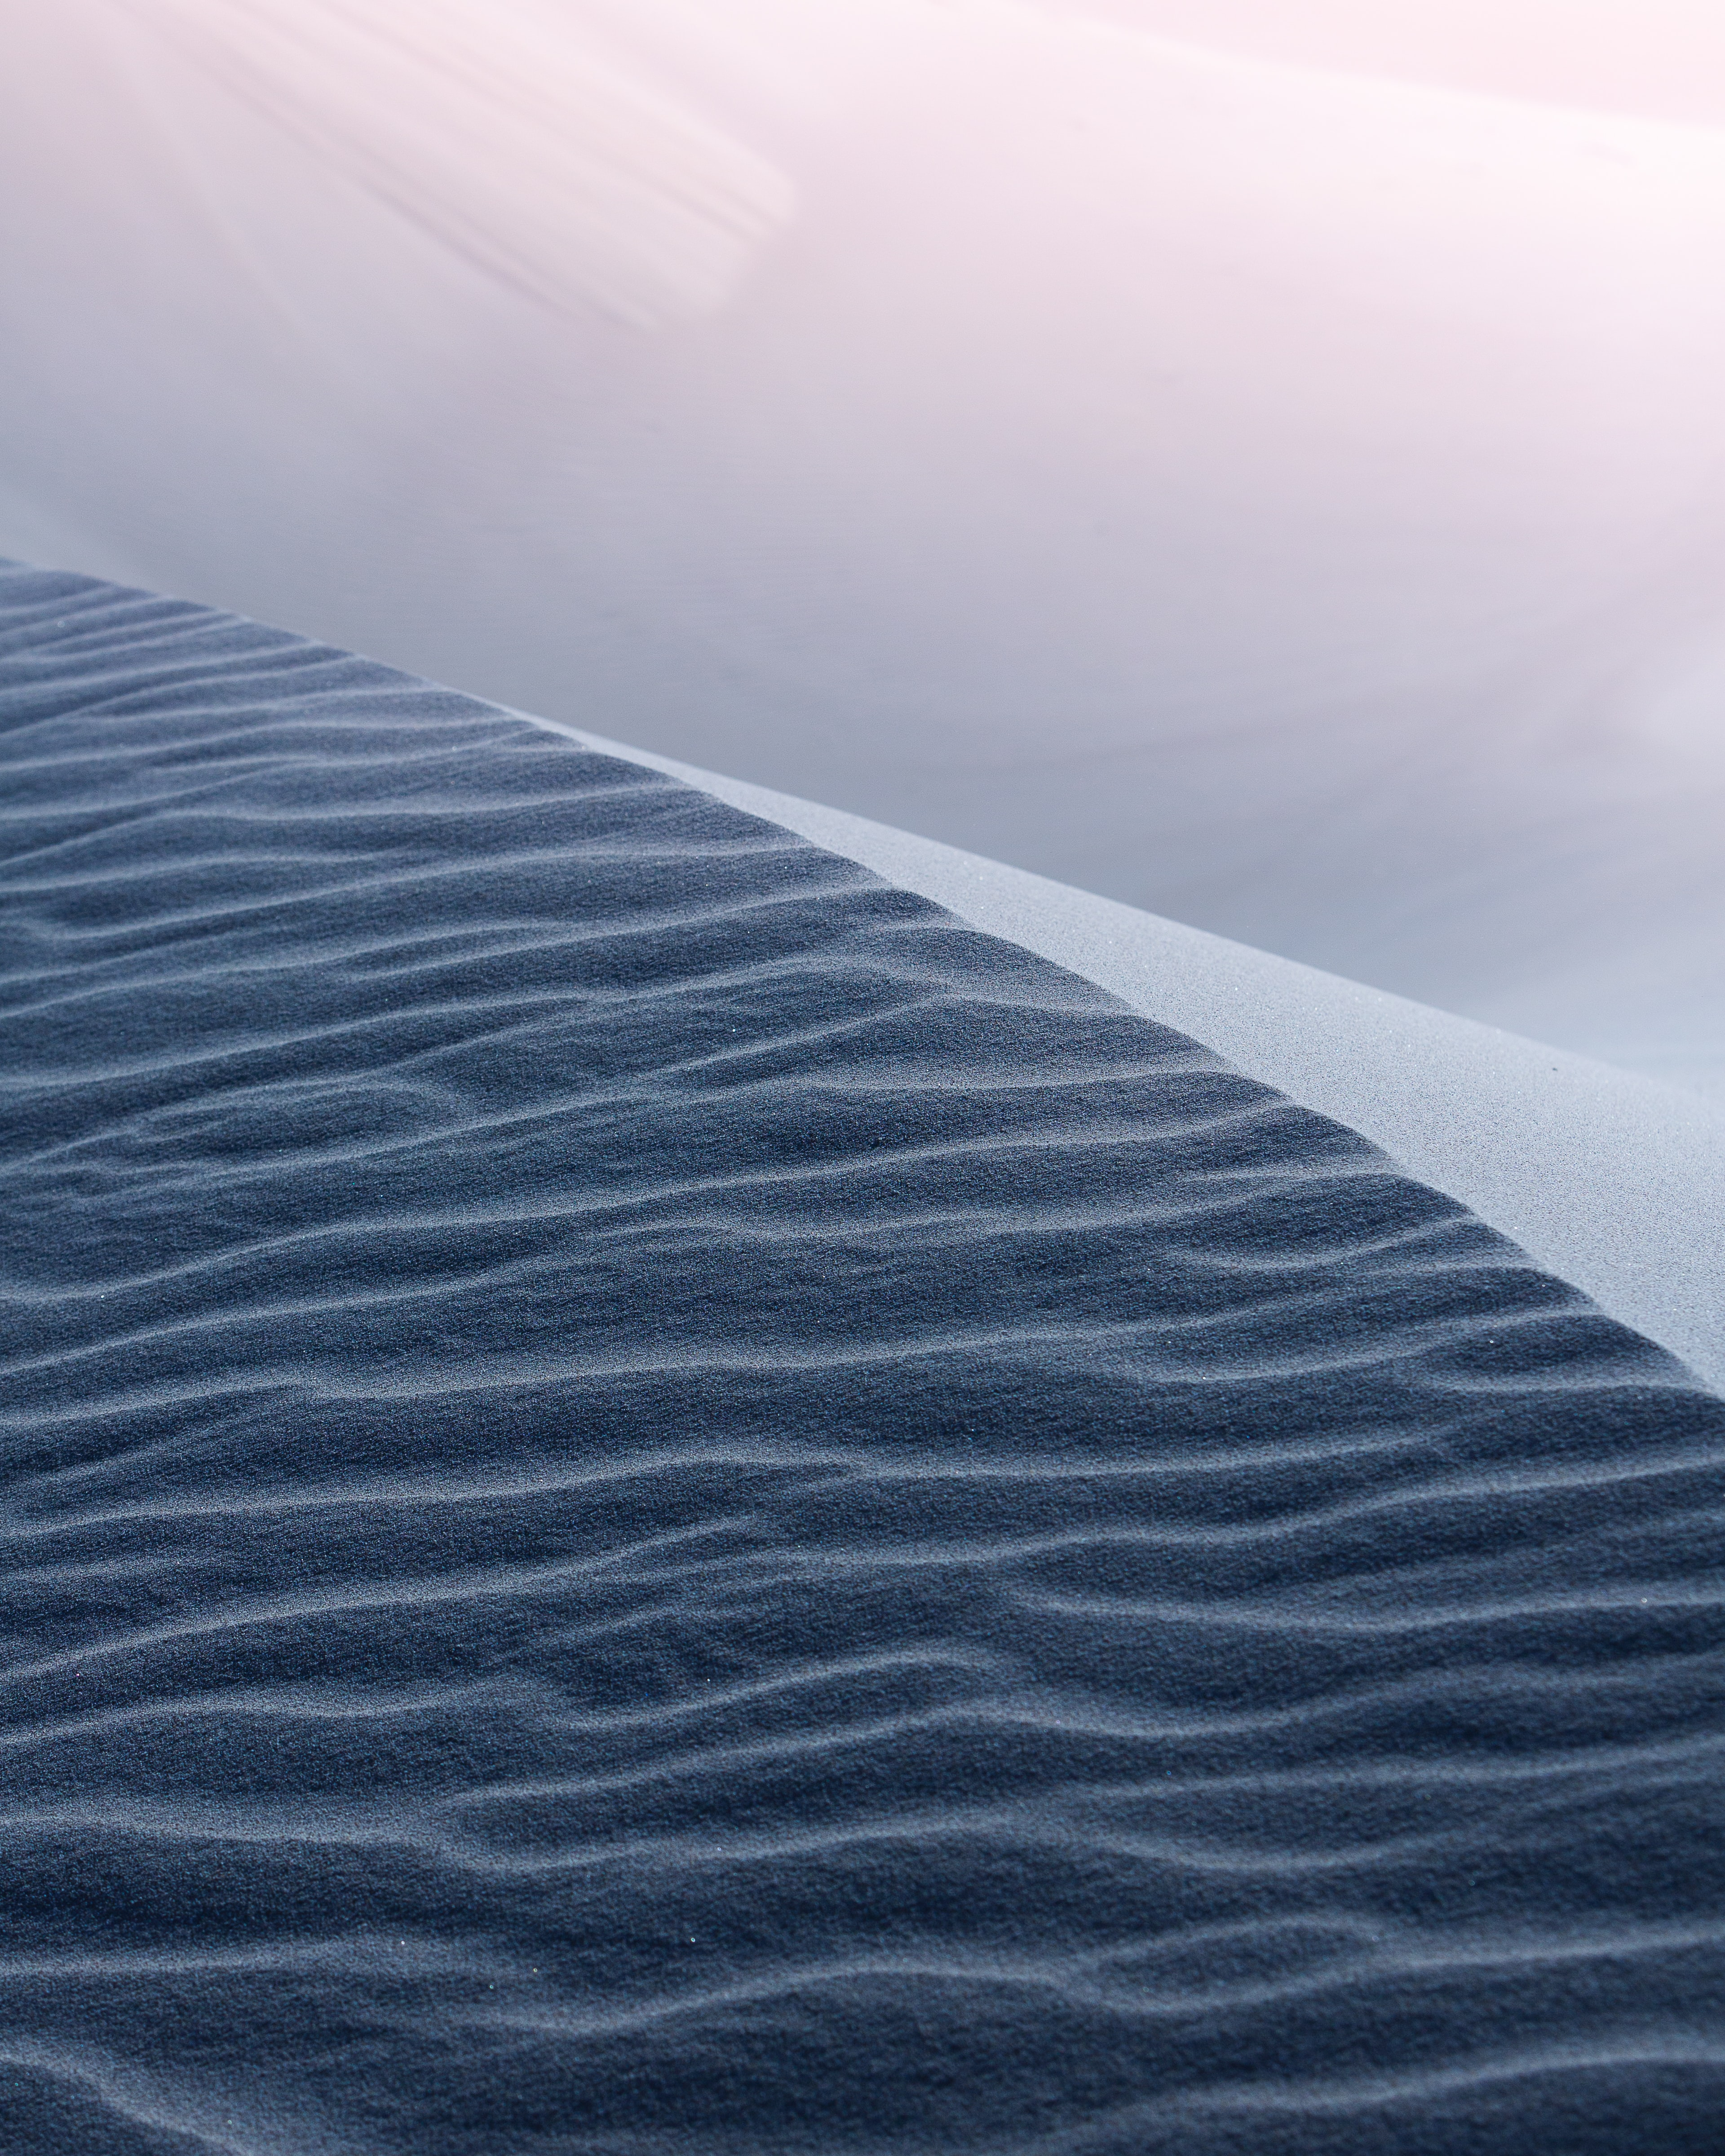 133146 free wallpaper 1080x2340 for phone, download images Nature, Sky, Waves, Sand, Desert, Wavy, Dunes 1080x2340 for mobile